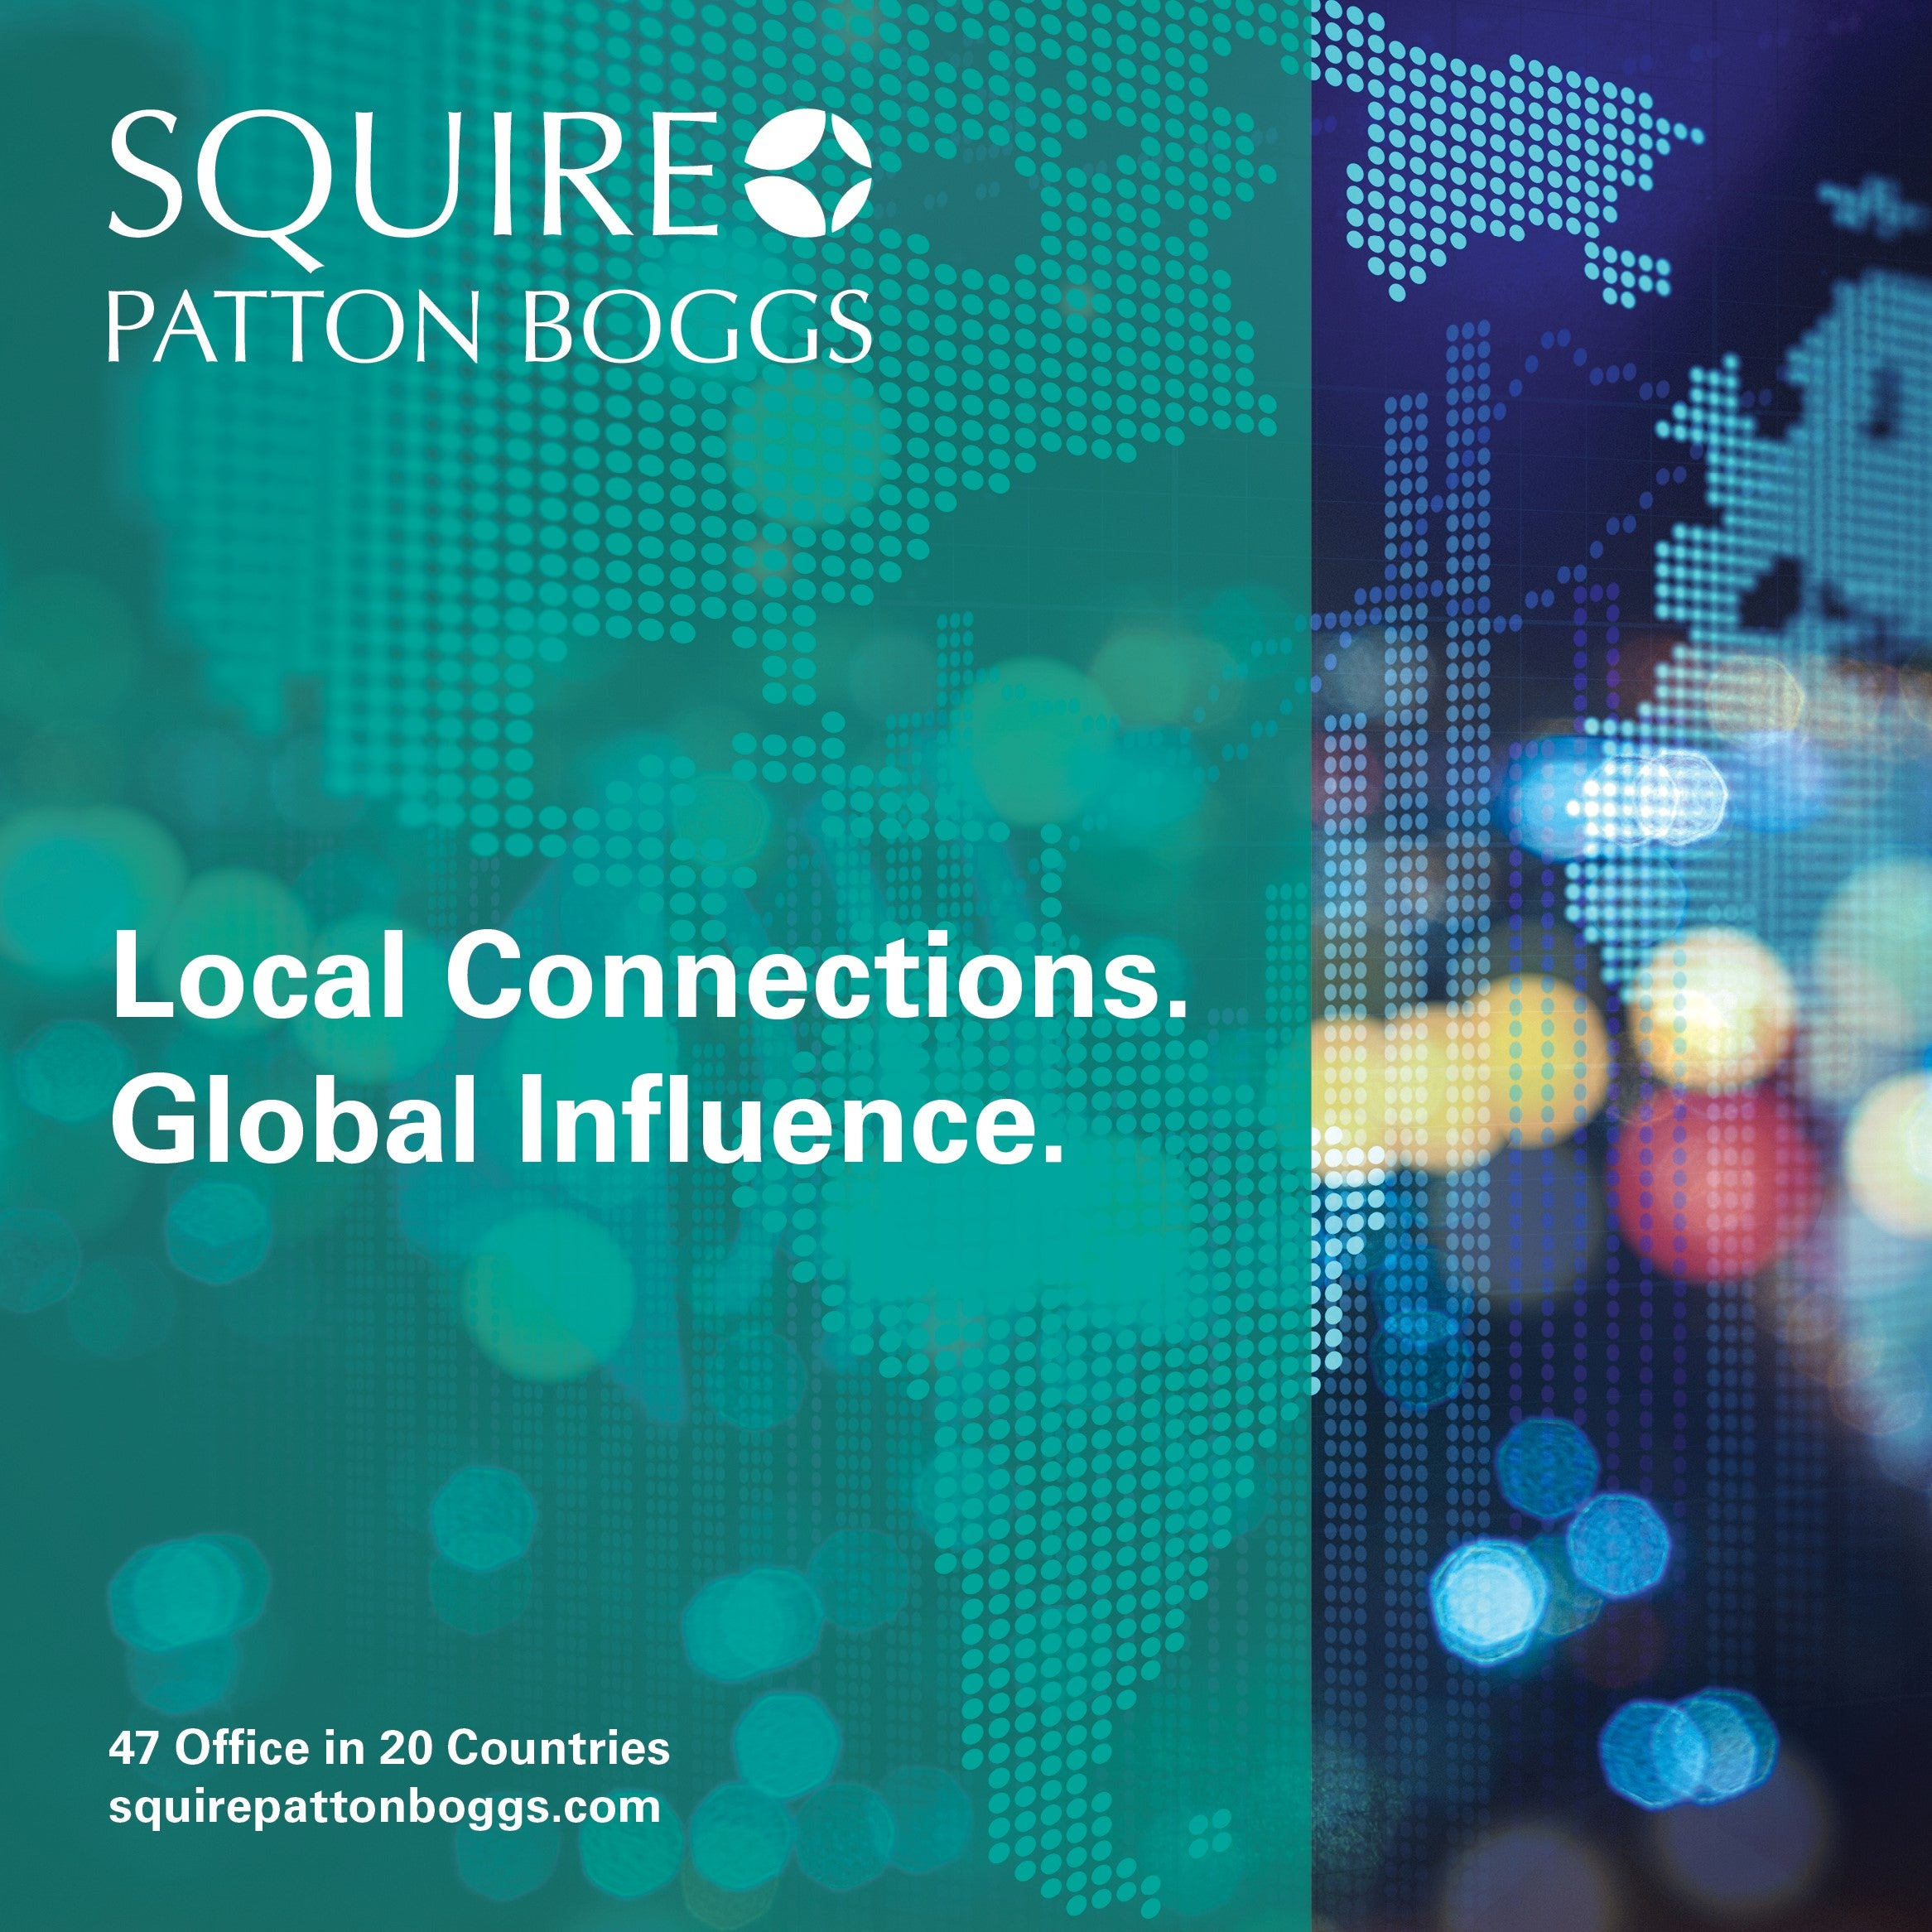 SoCal's Squire Patton Boggs 2019 560x560 Sponsor Ad